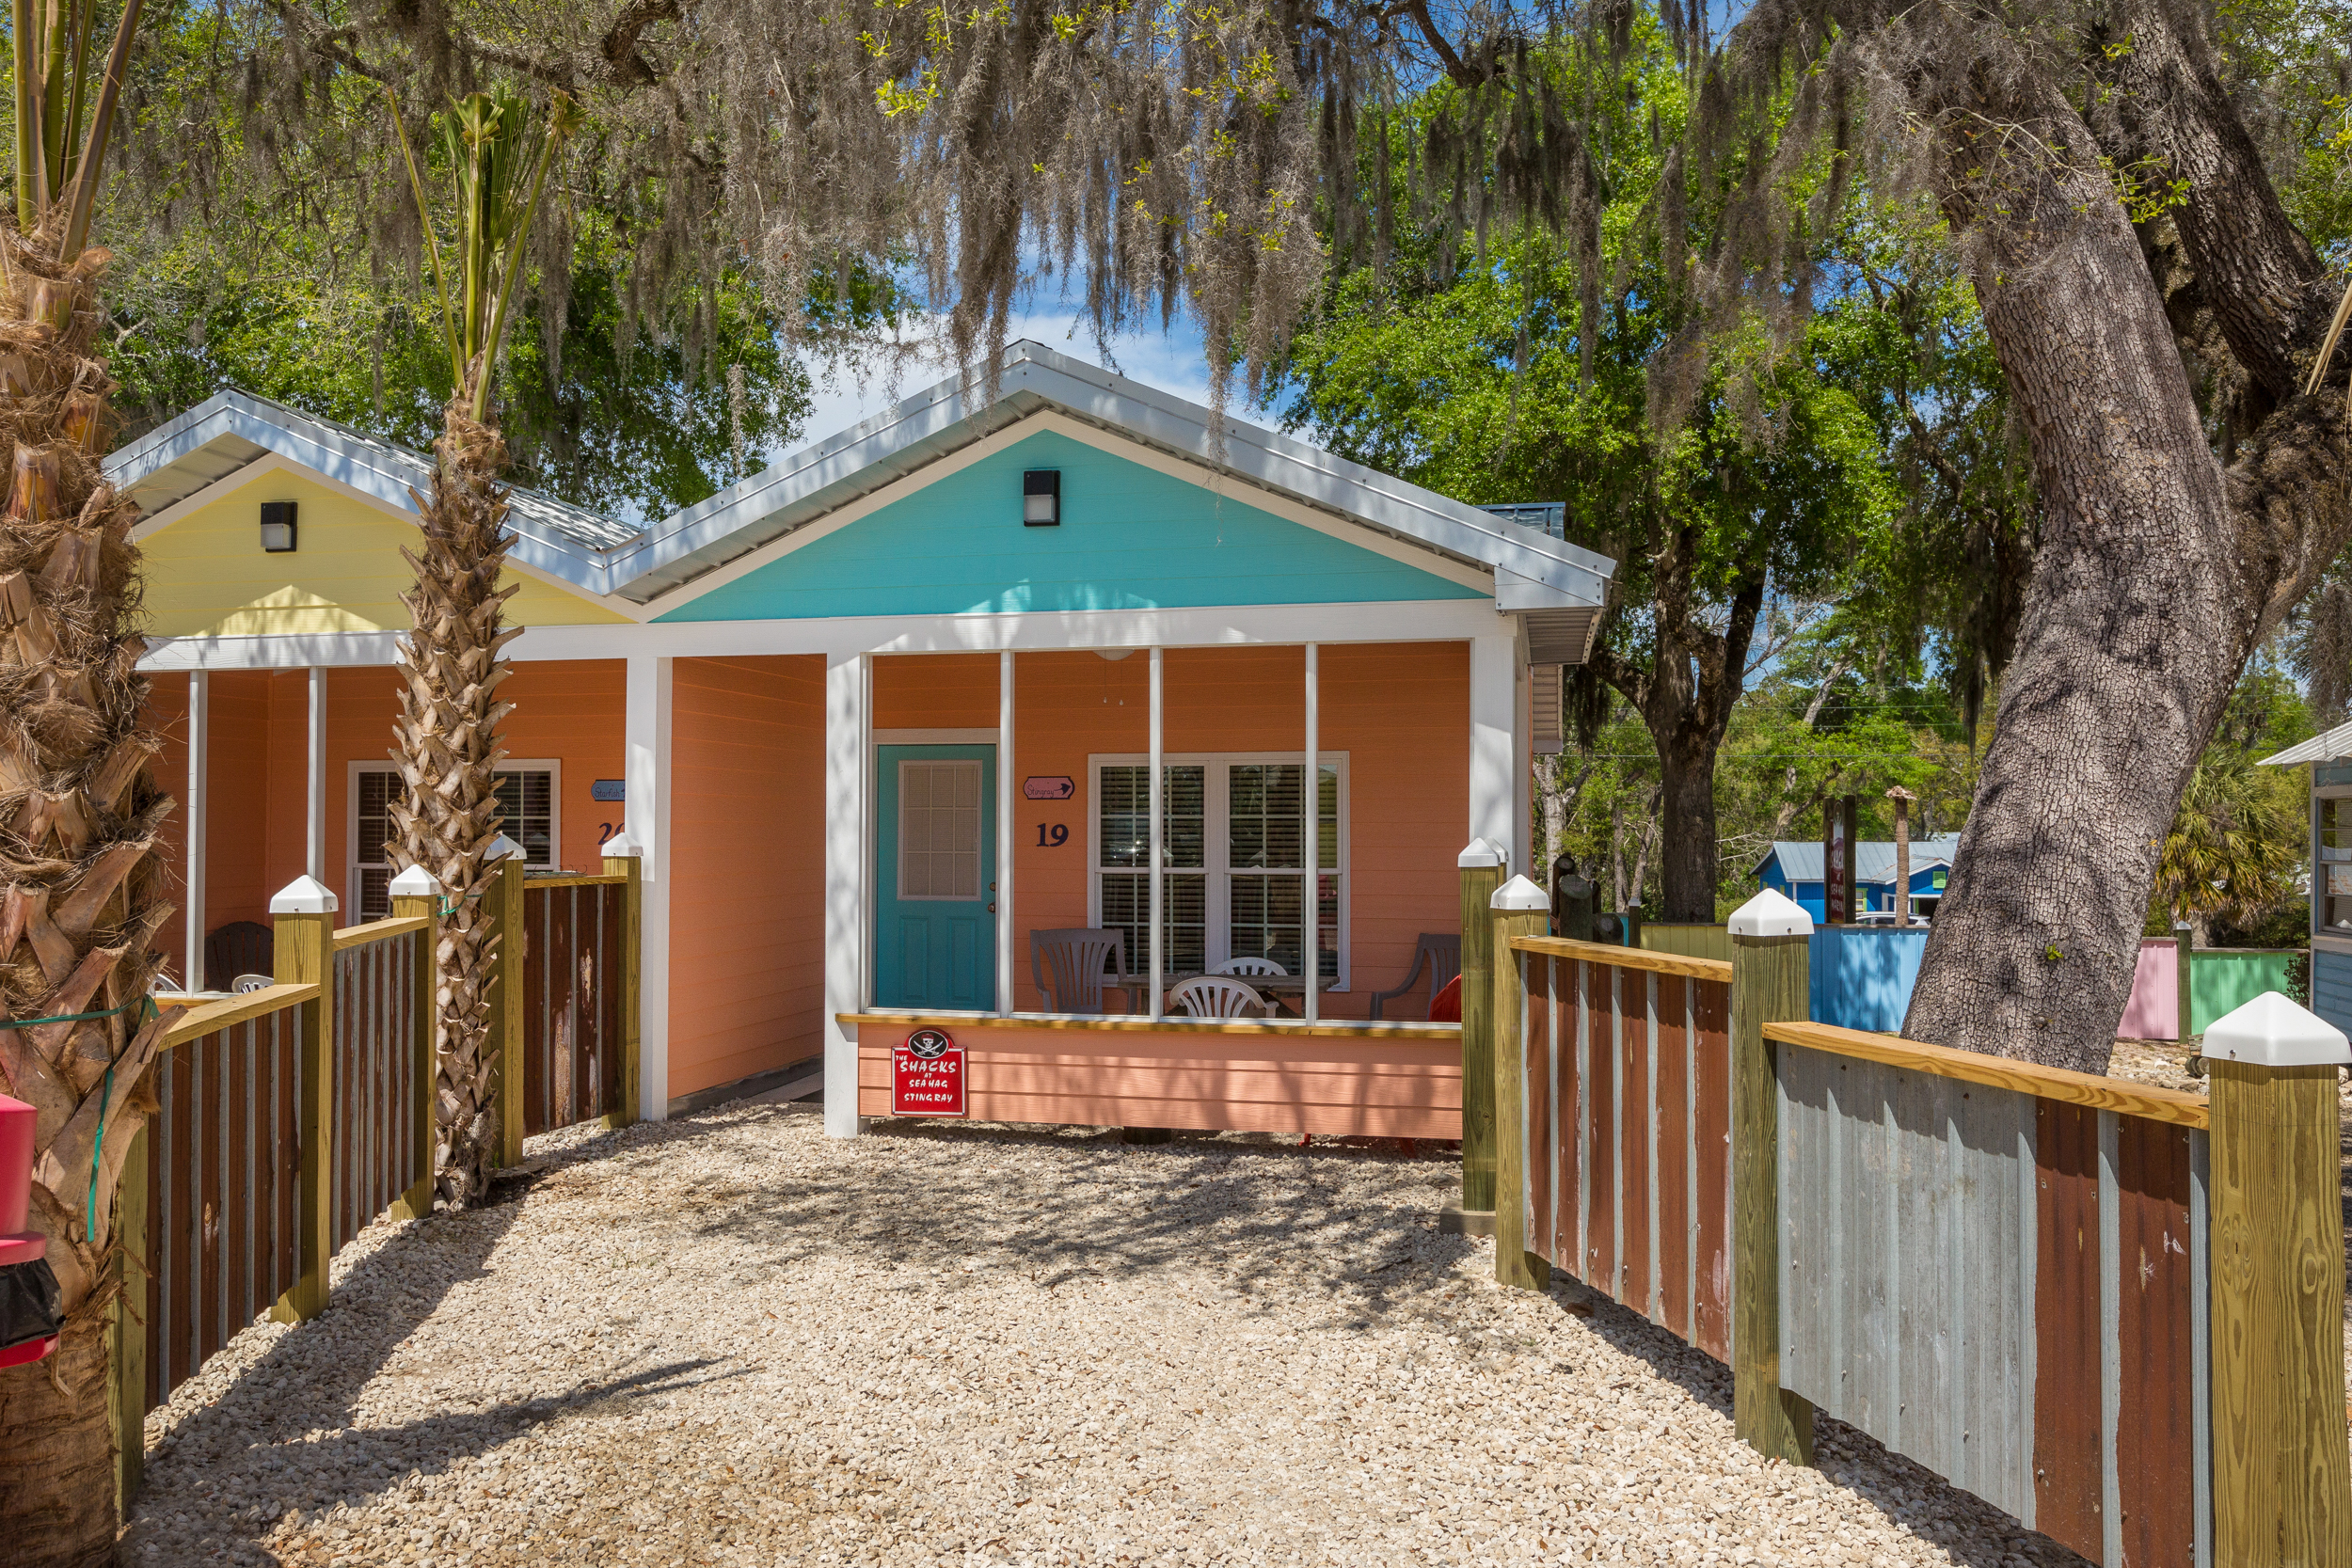 rentals campground adventure glamping cabins everglades swamp florida eco tours cabin